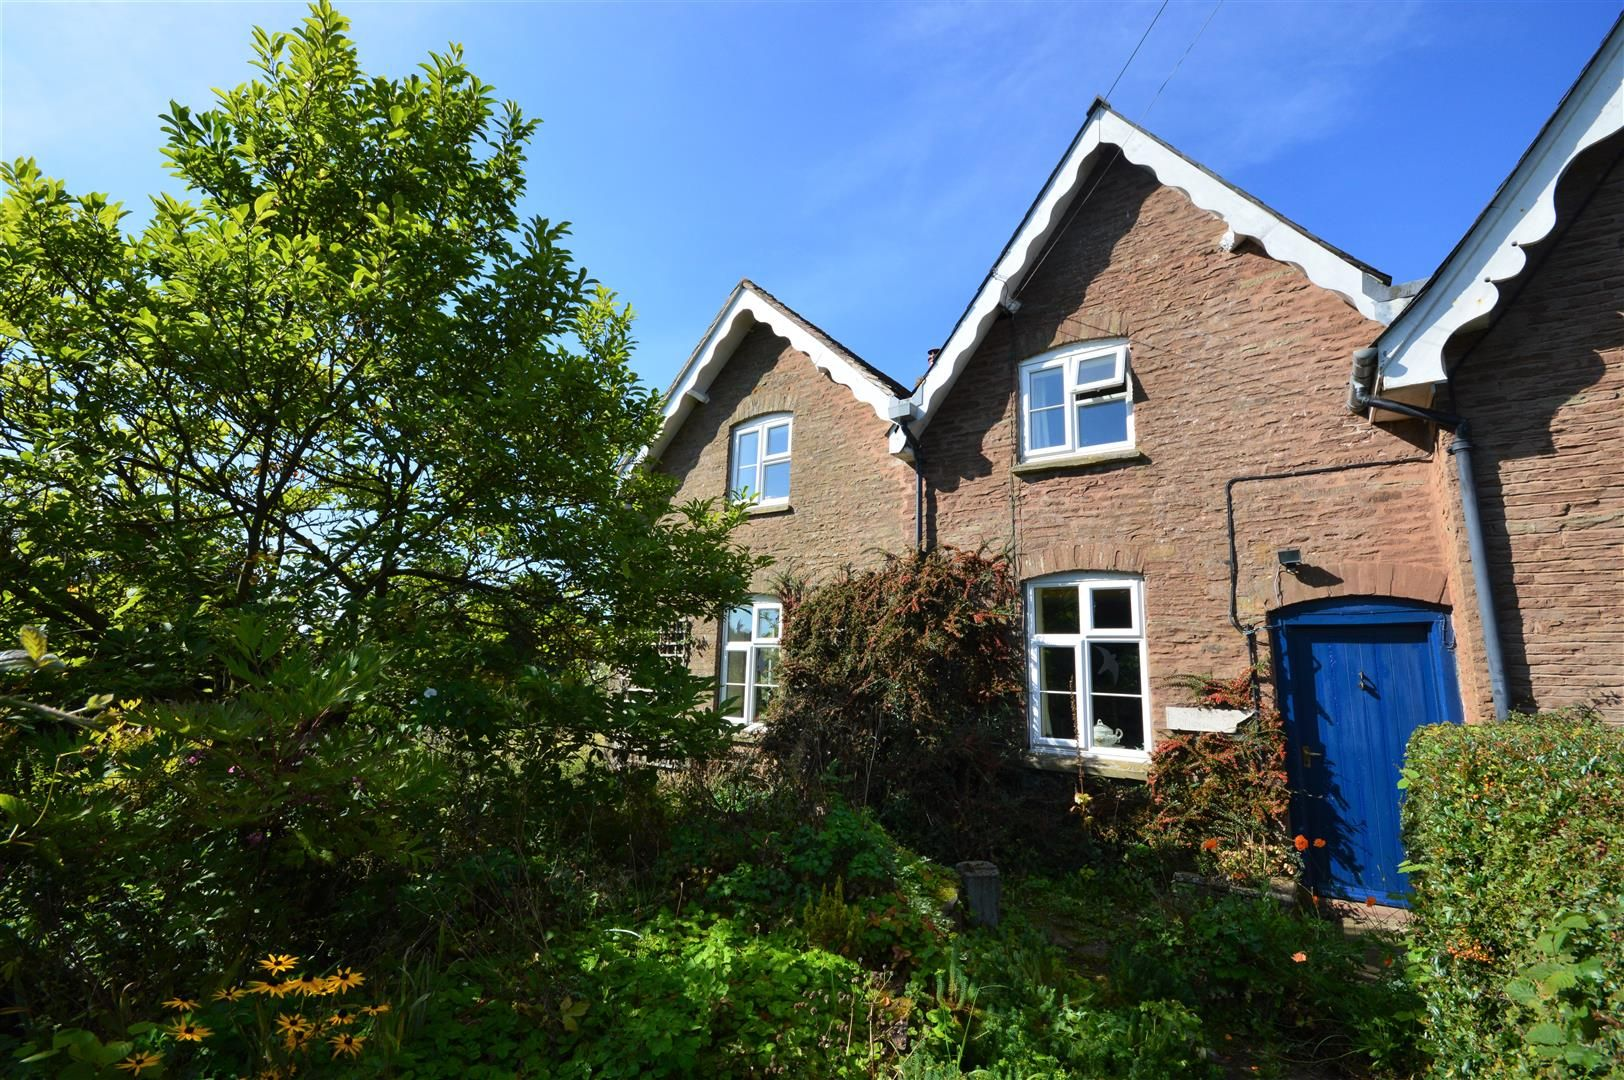 3 bed semi-detached for sale in Hatfield 18